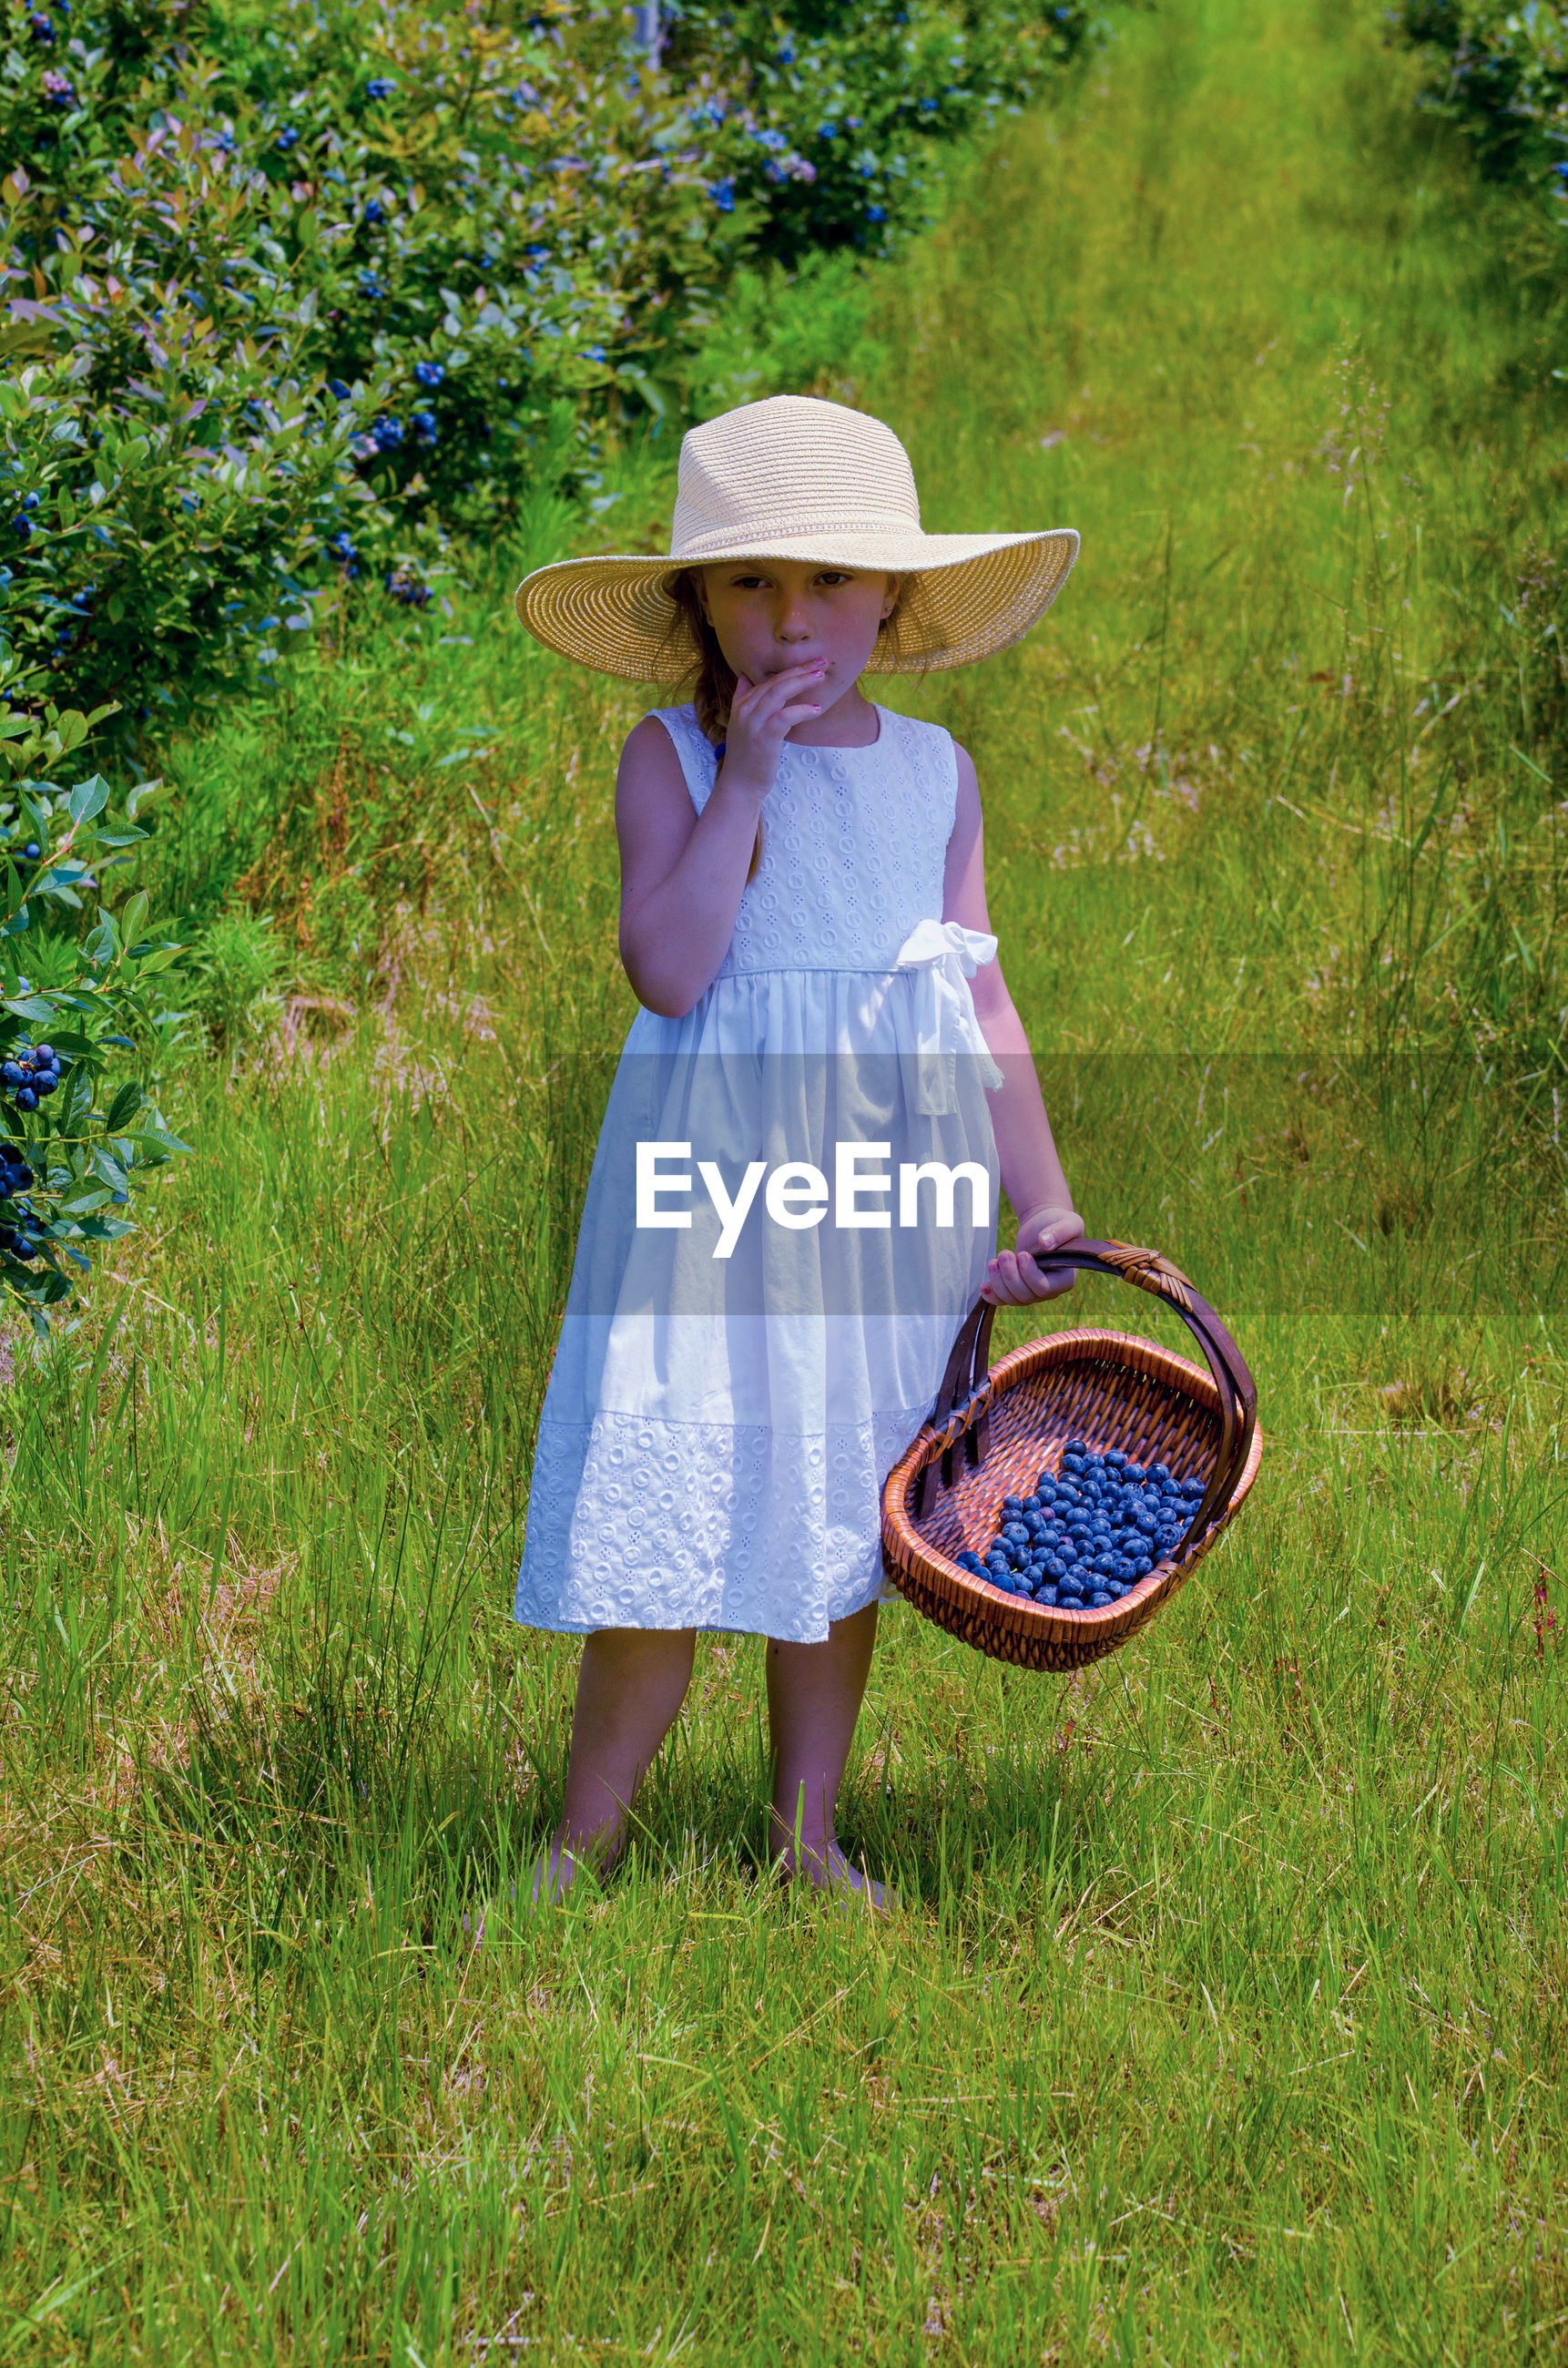 Little girl tasting fresh picked blue berries with a basket of fruit in a floppy hat